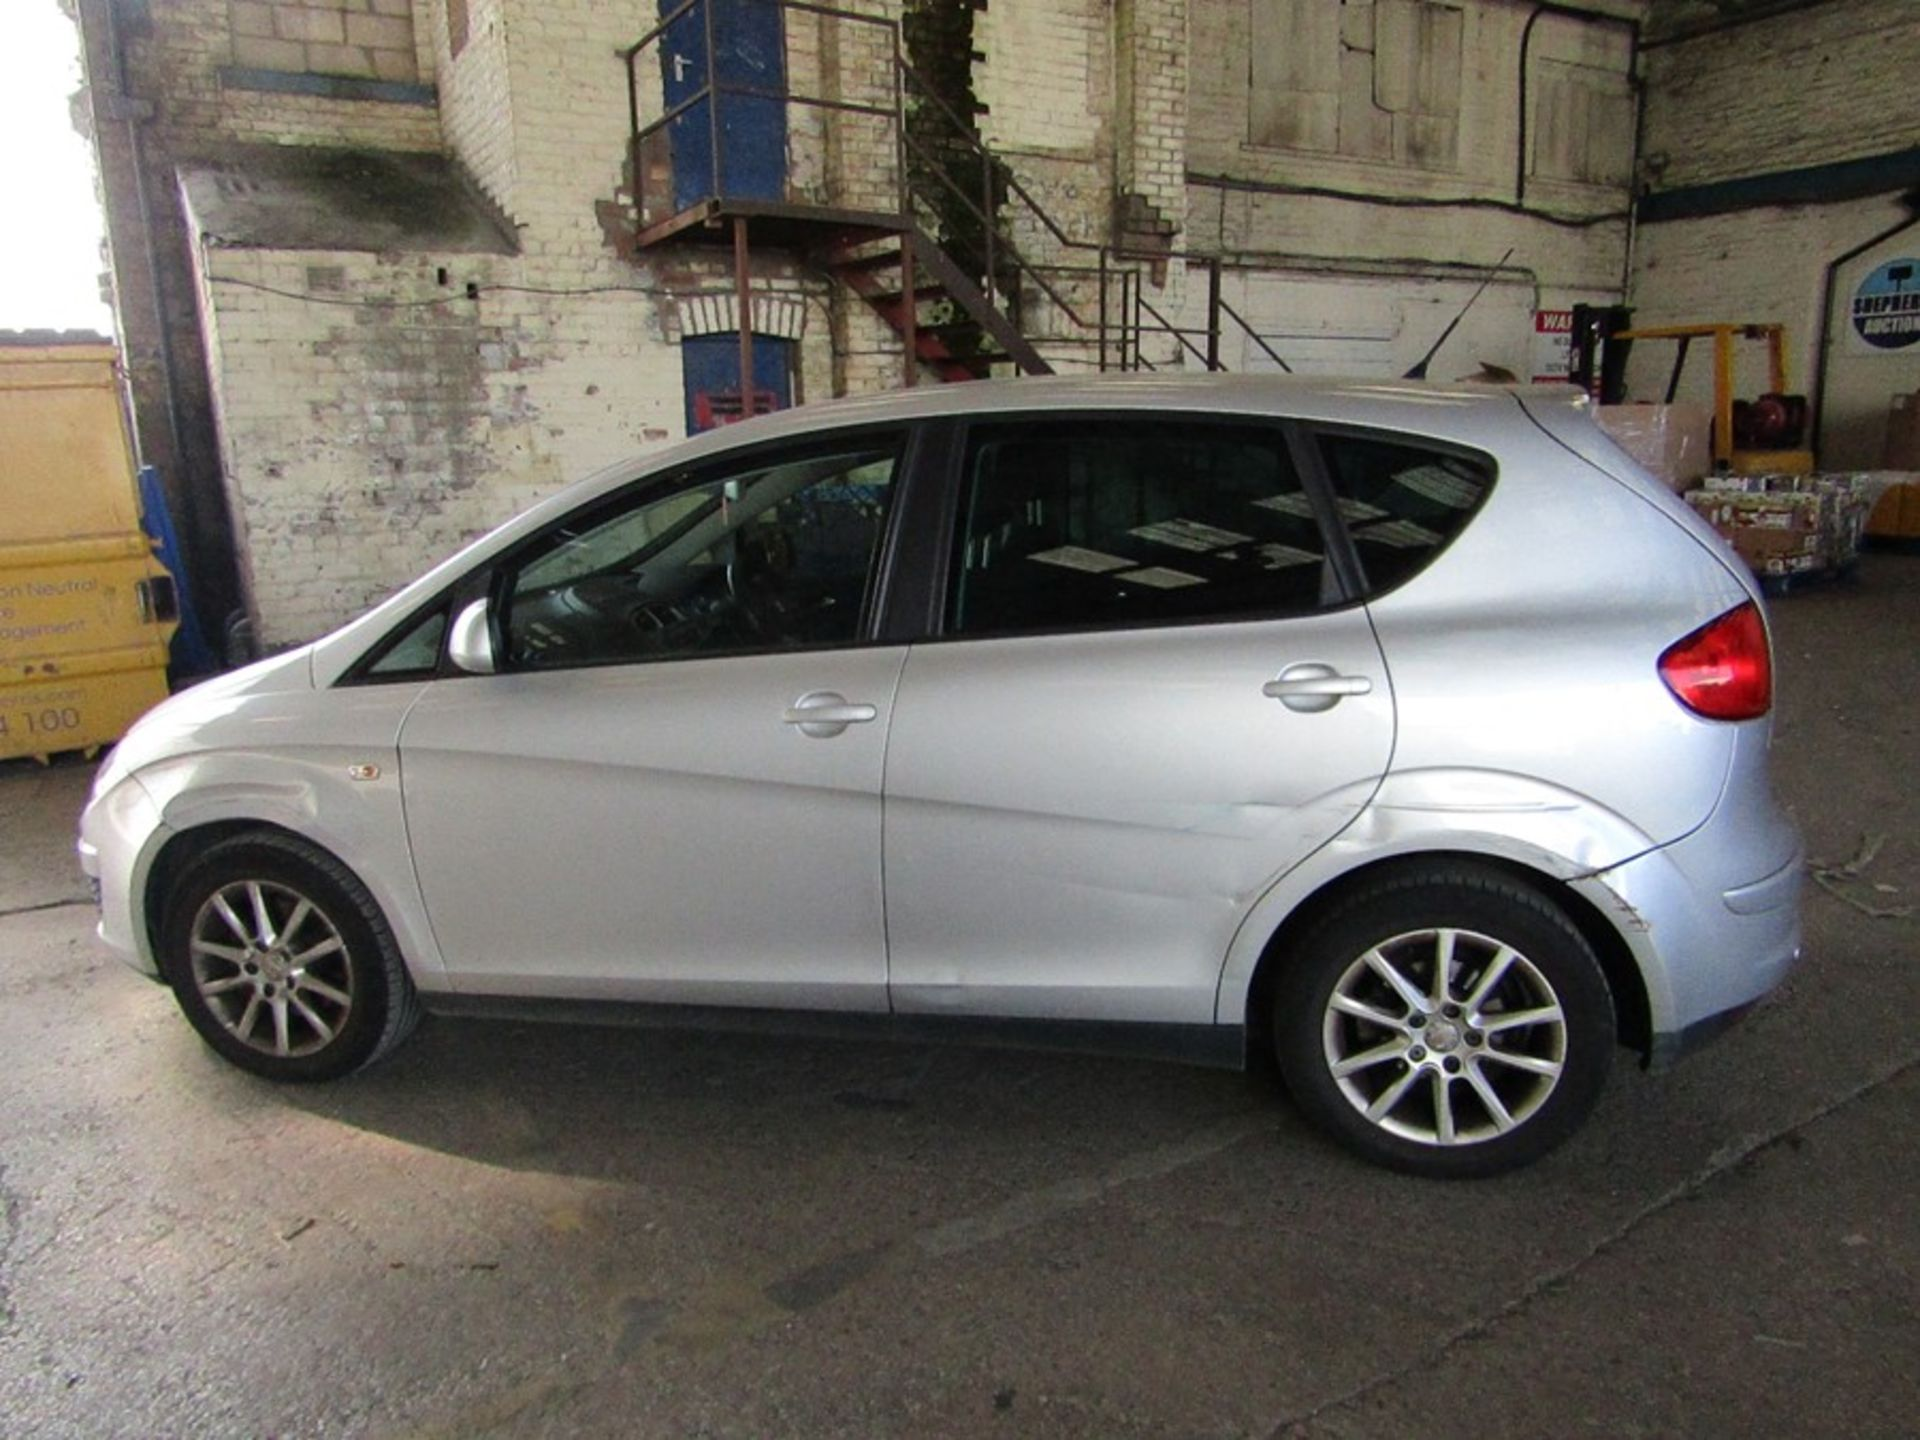 2011 Seat Althea SE CR TDI Auto, 1.6TDI, 47,678 miles (unchecked but appears to be inline with the - Image 4 of 17